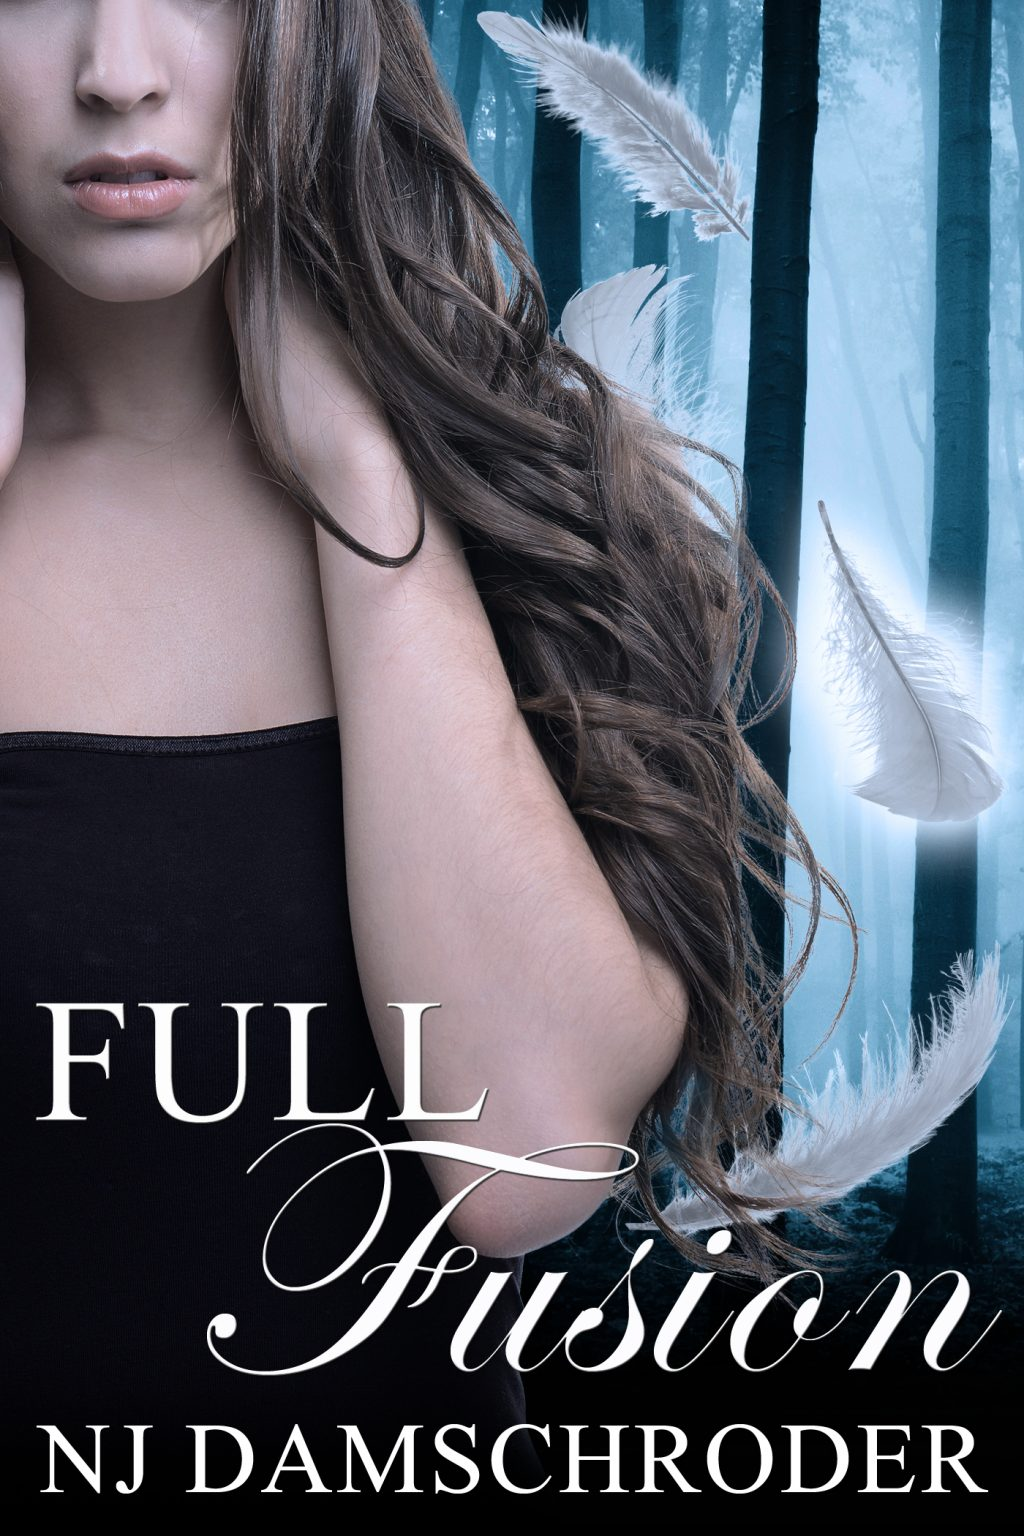 FULL FUSION (The Fusion Series Volume 1) by NJ Damschroder